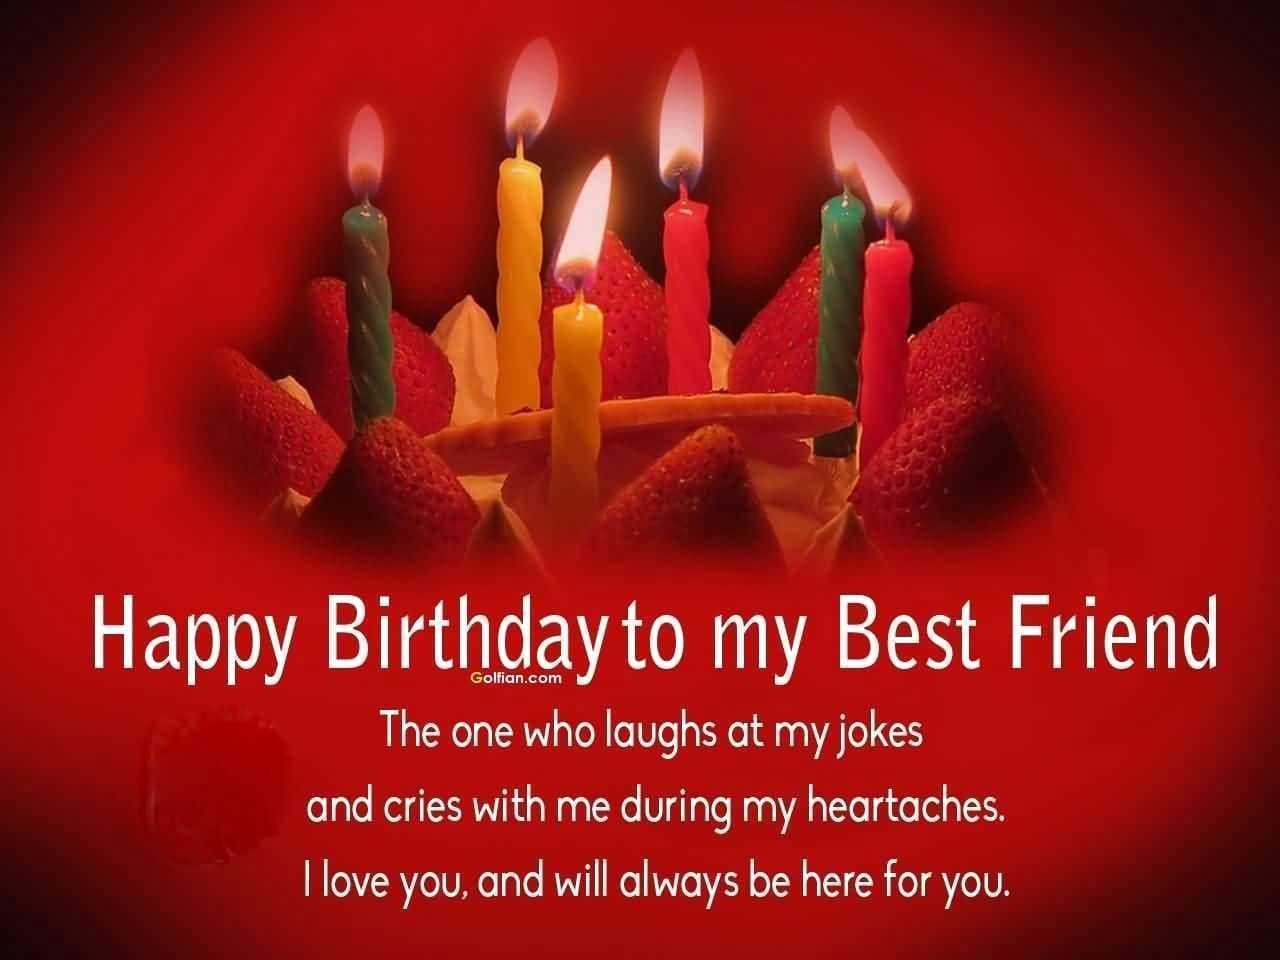 a birthday wish for my best friend ; birthday-wishes-for-your-best-friend-beautiful-happy-birthday-to-my-best-friend-birthday-wishes-for-a-of-birthday-wishes-for-your-best-friend